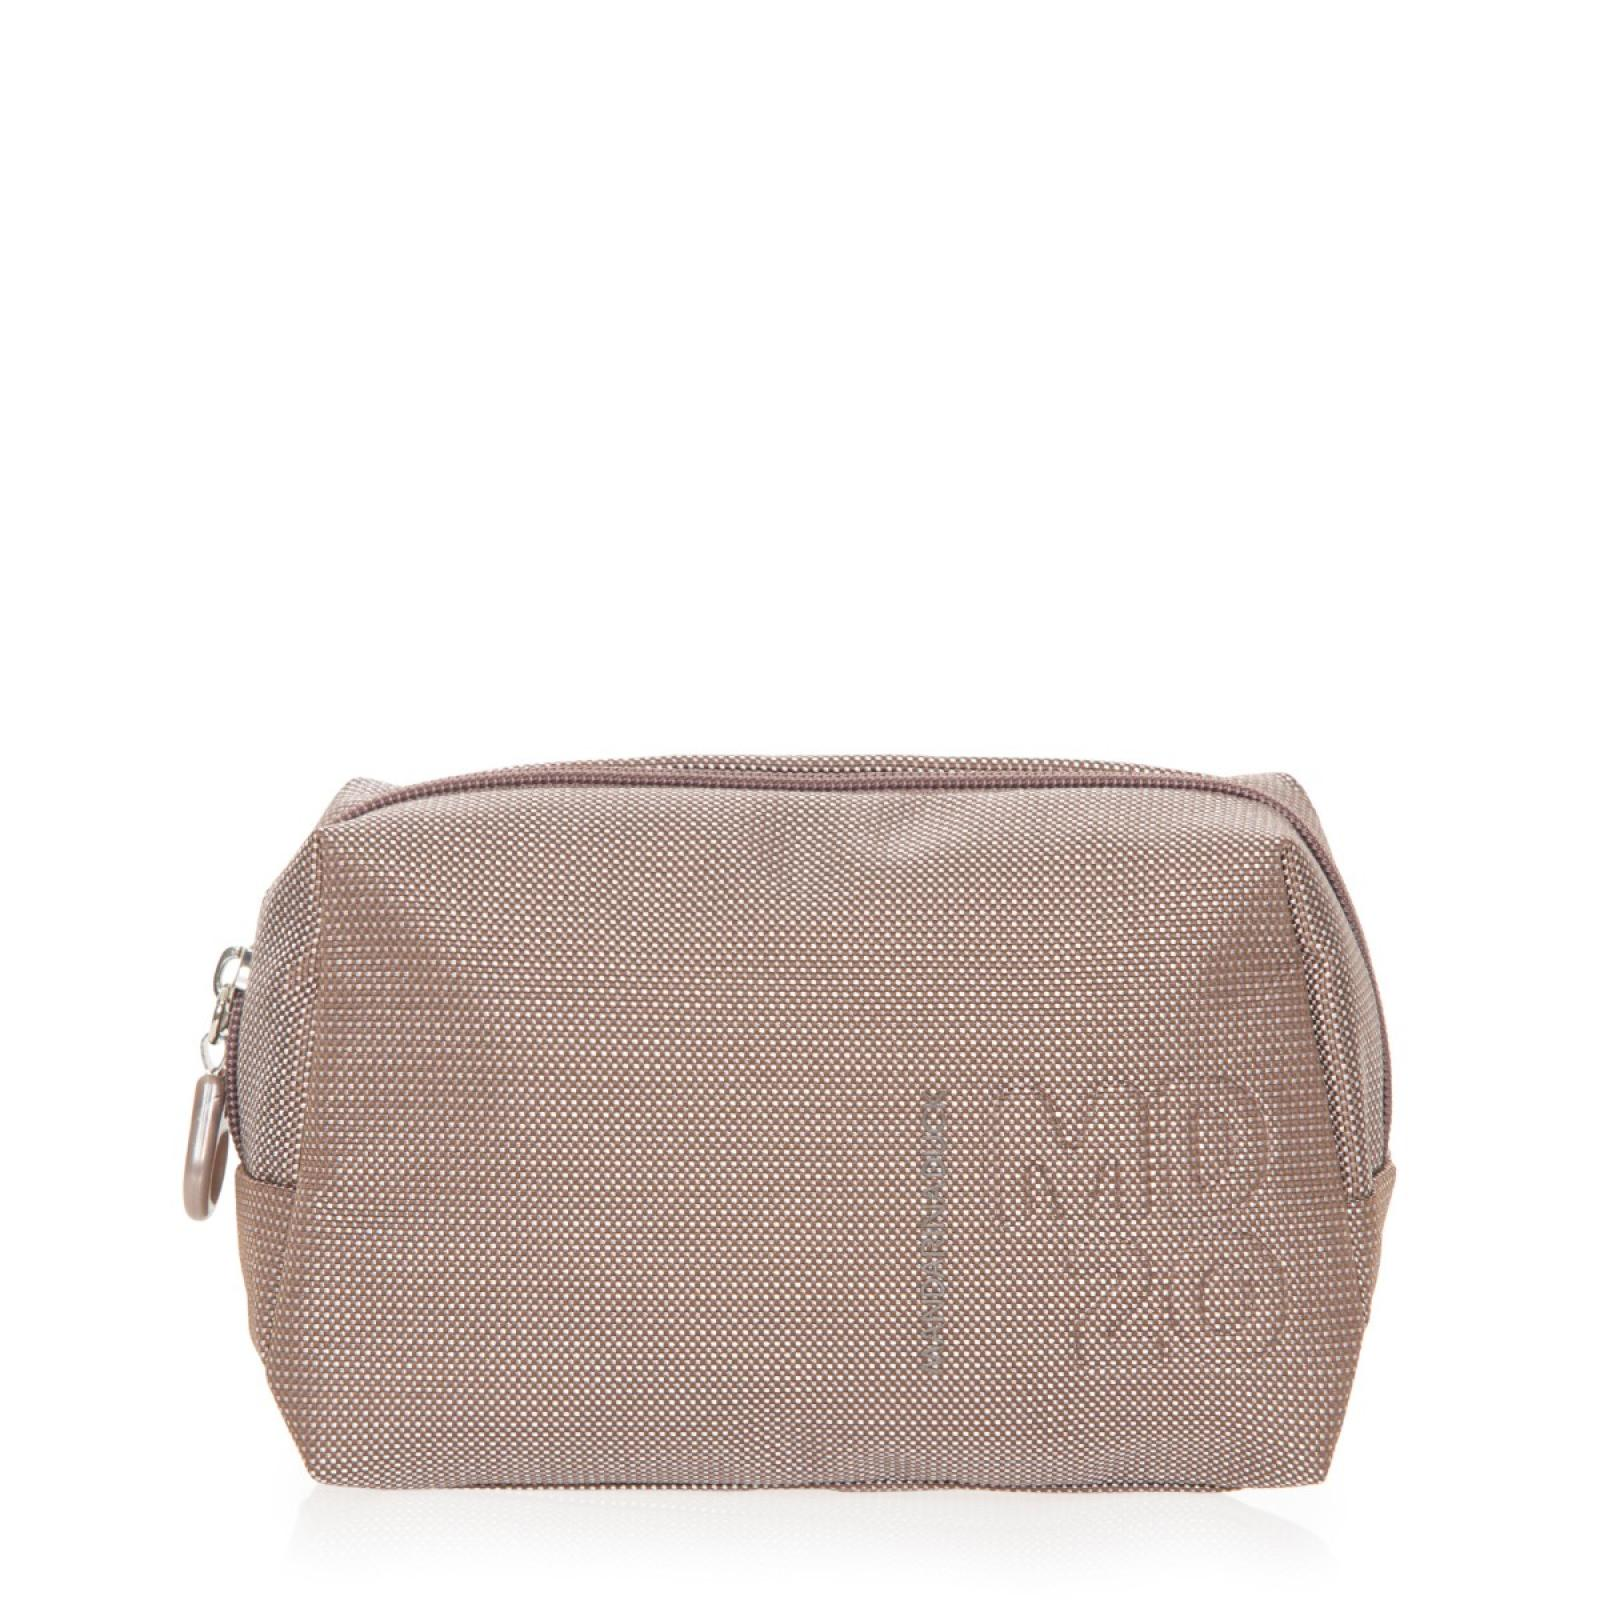 Mandarina Duck MD20 Beauty Case - 1